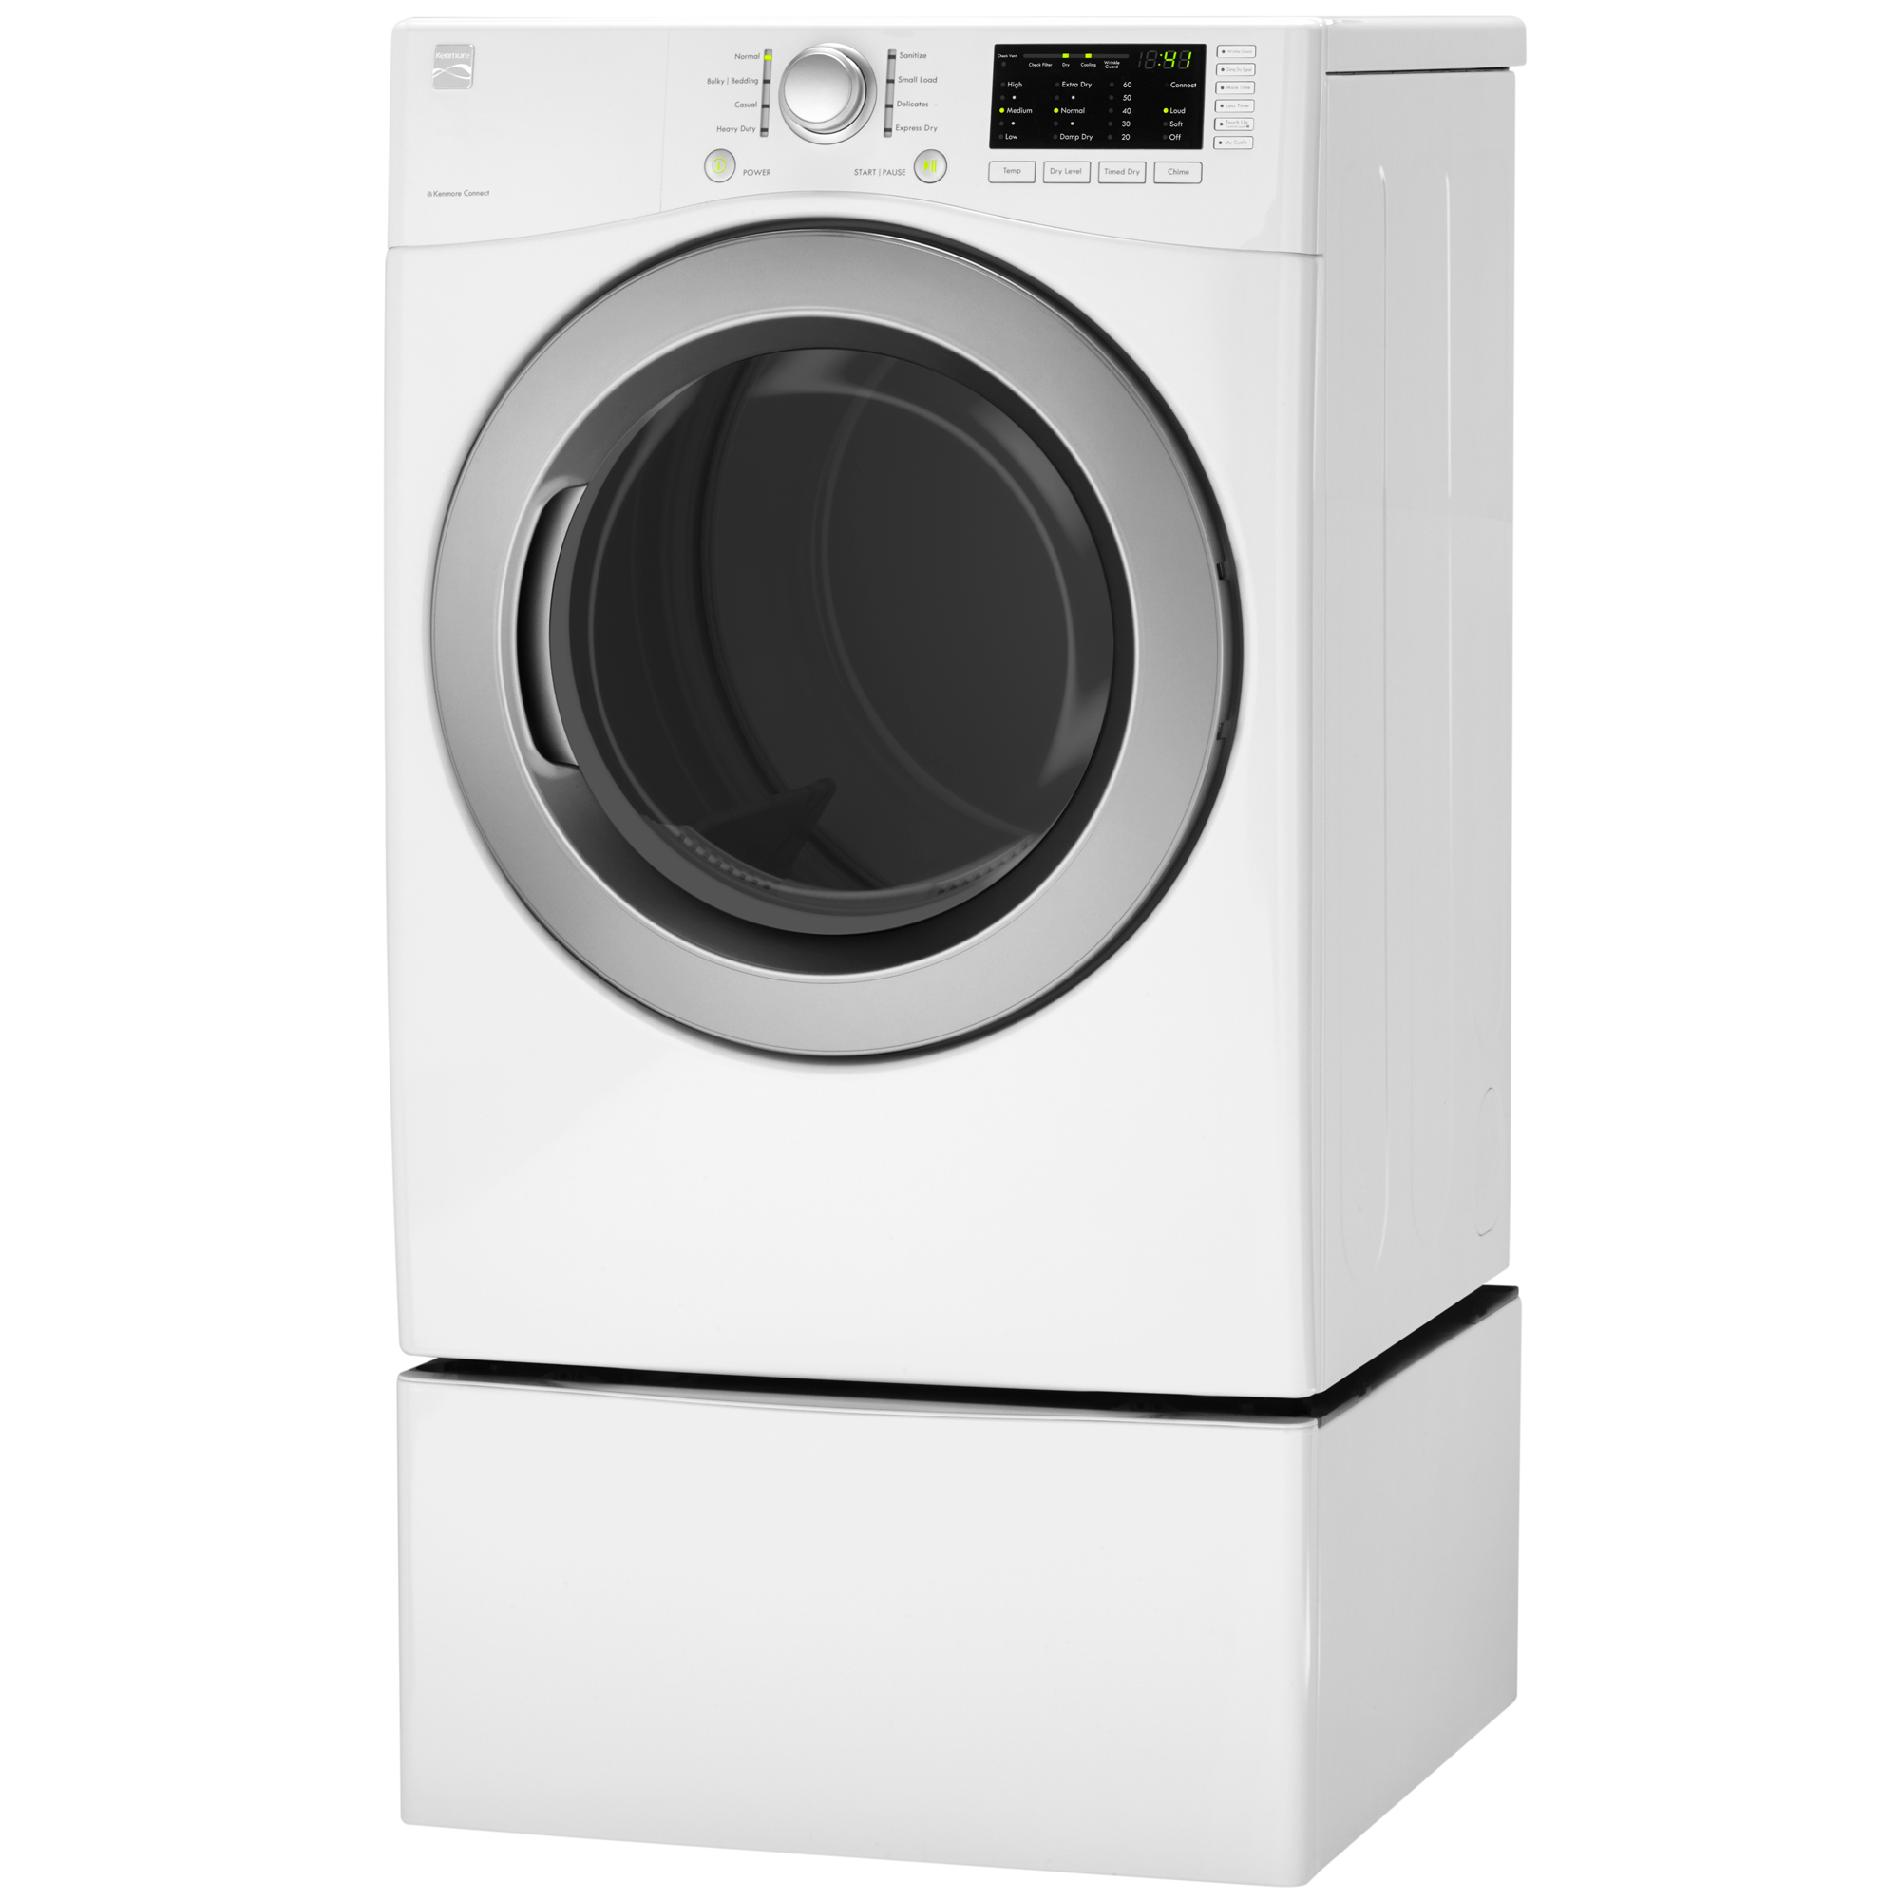 Kenmore 7.3 cu. ft. Gas Dryer w/ Sensor Dry - White